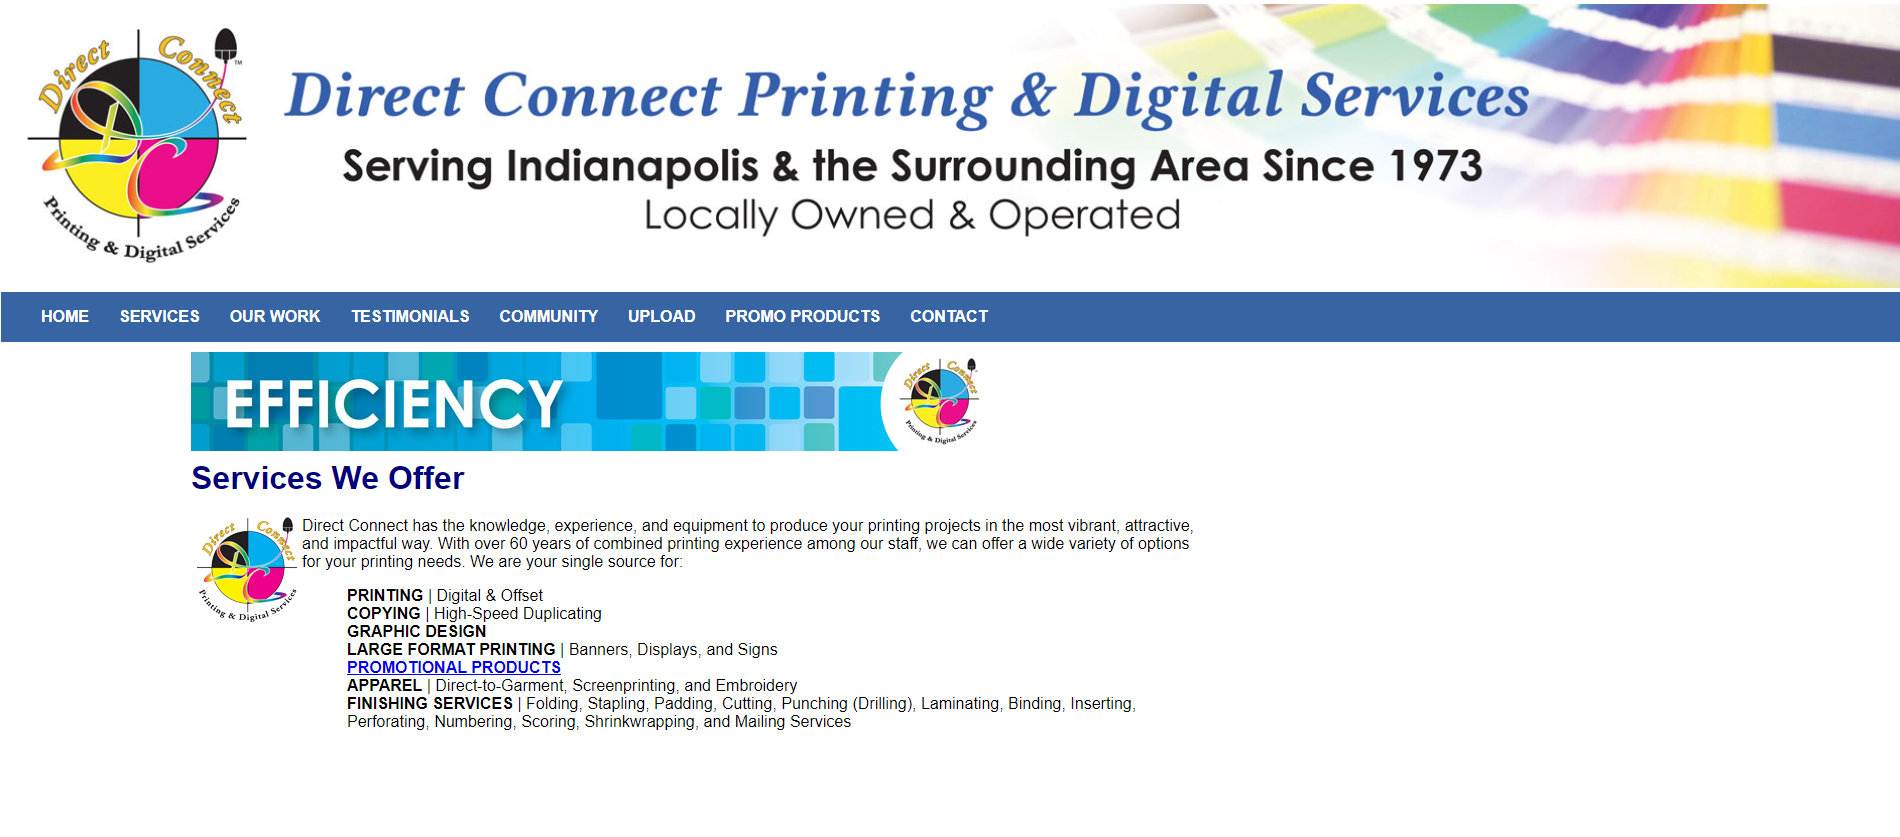 5 Printing in Indianapolis